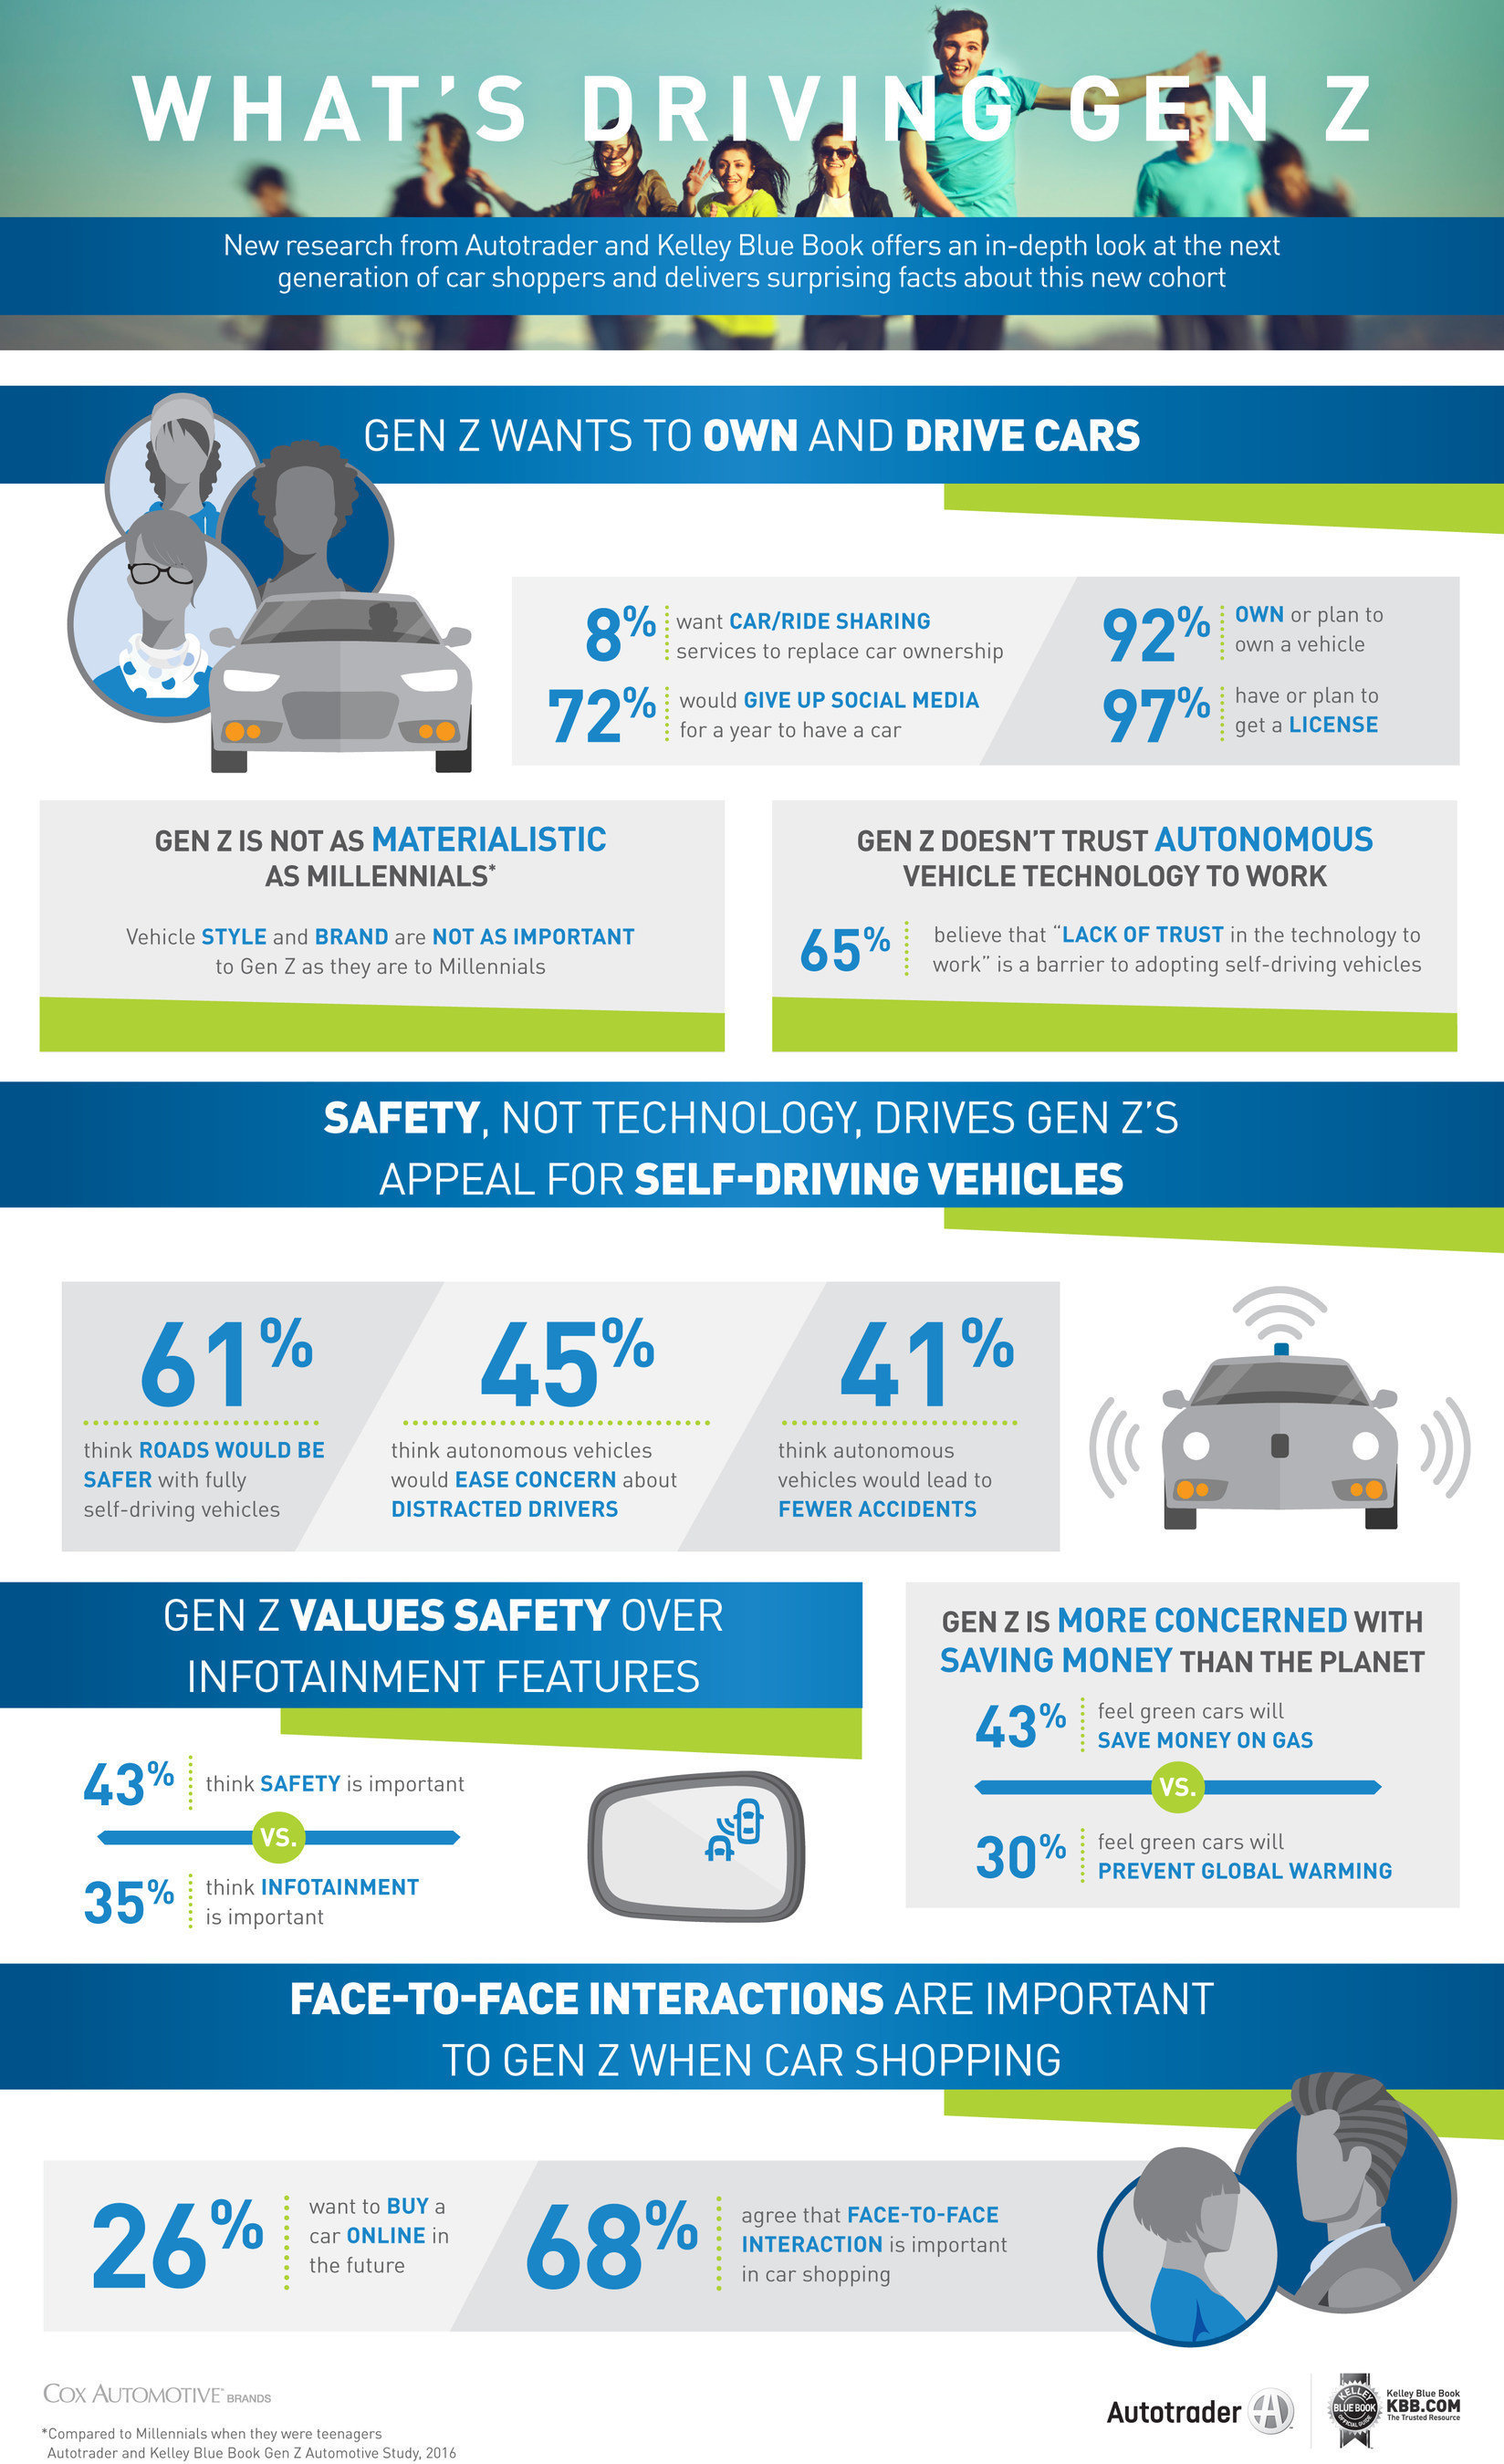 New research from Autotrader(r) and Kelley Blue Book(r), the most visited car shopping and research websites, ...